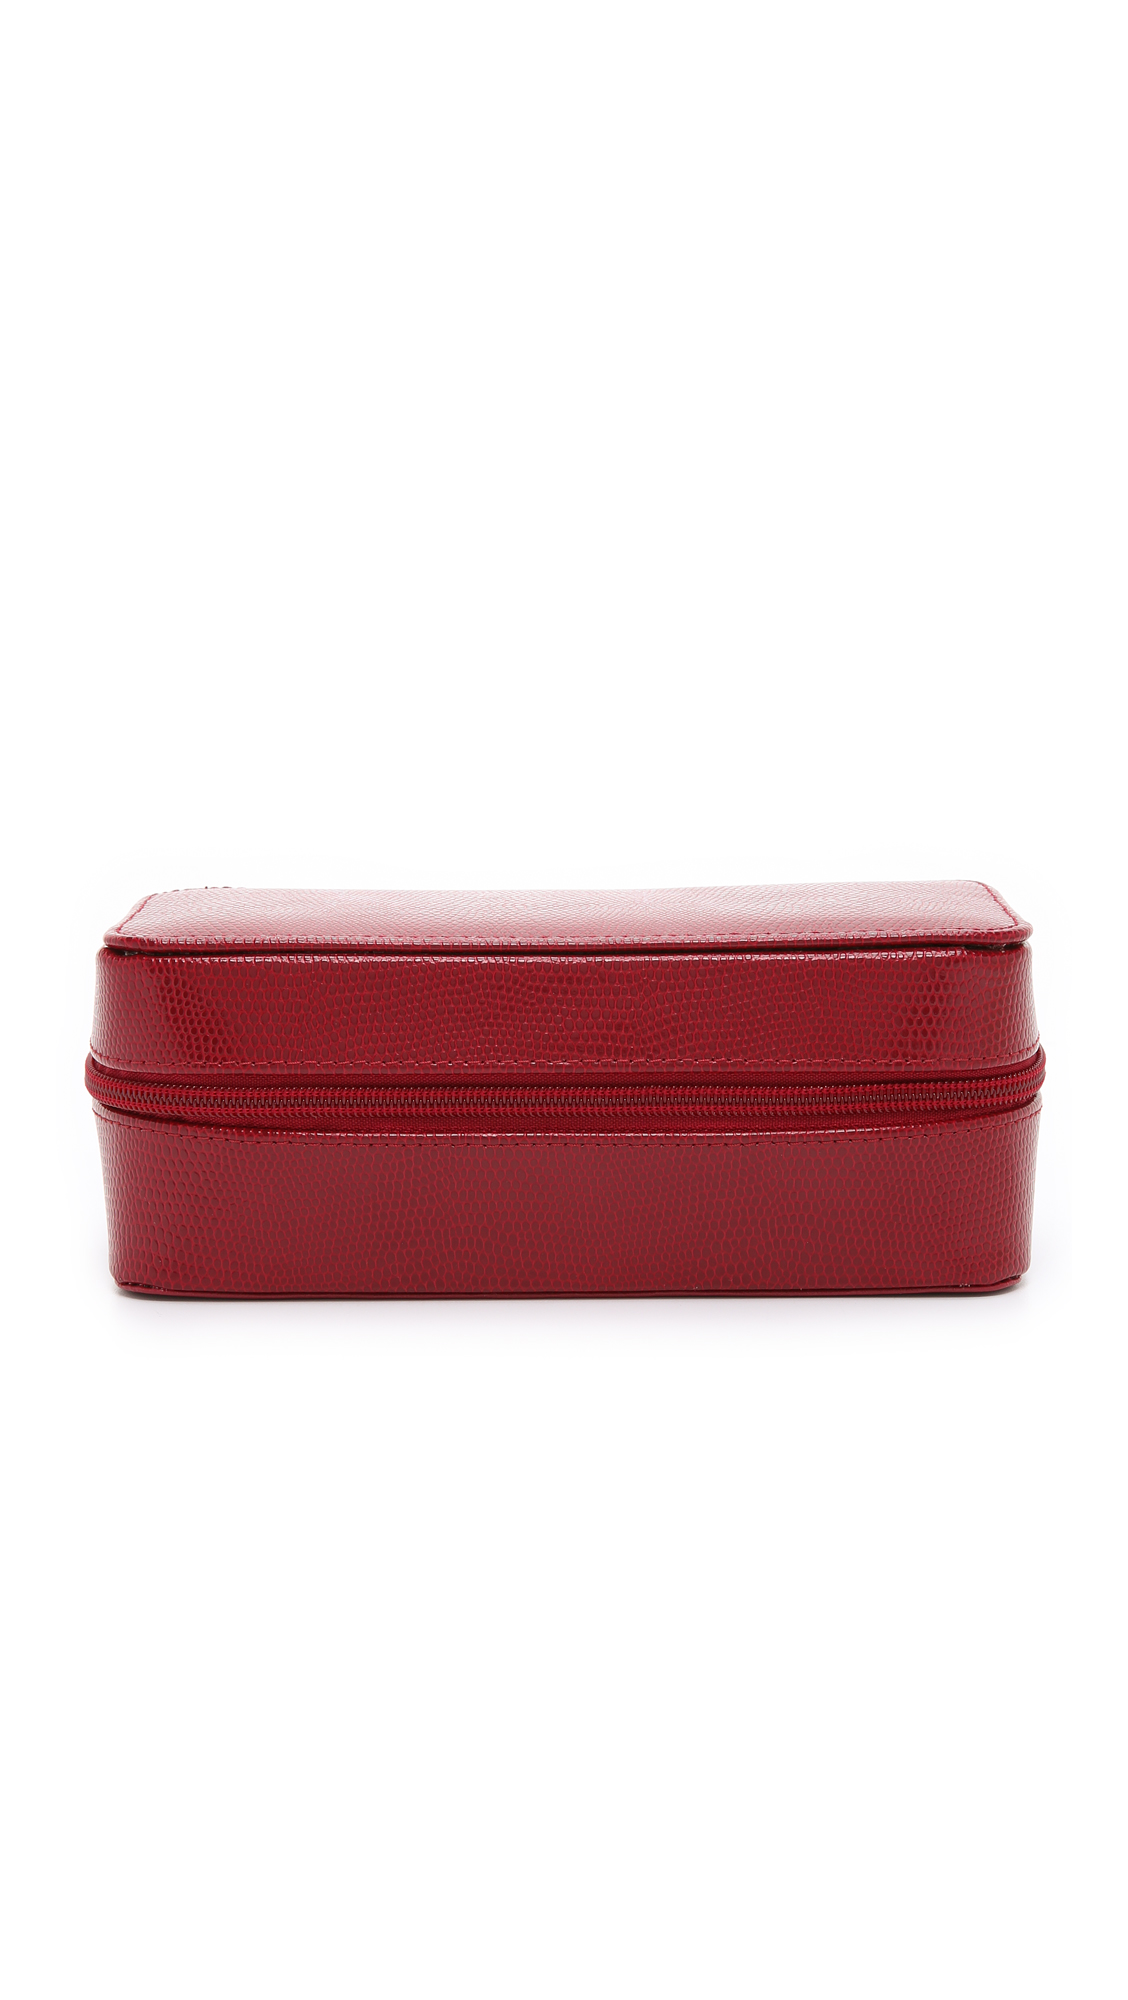 Gift Boutique Watch & Bracelet Case - Red at Shopbop